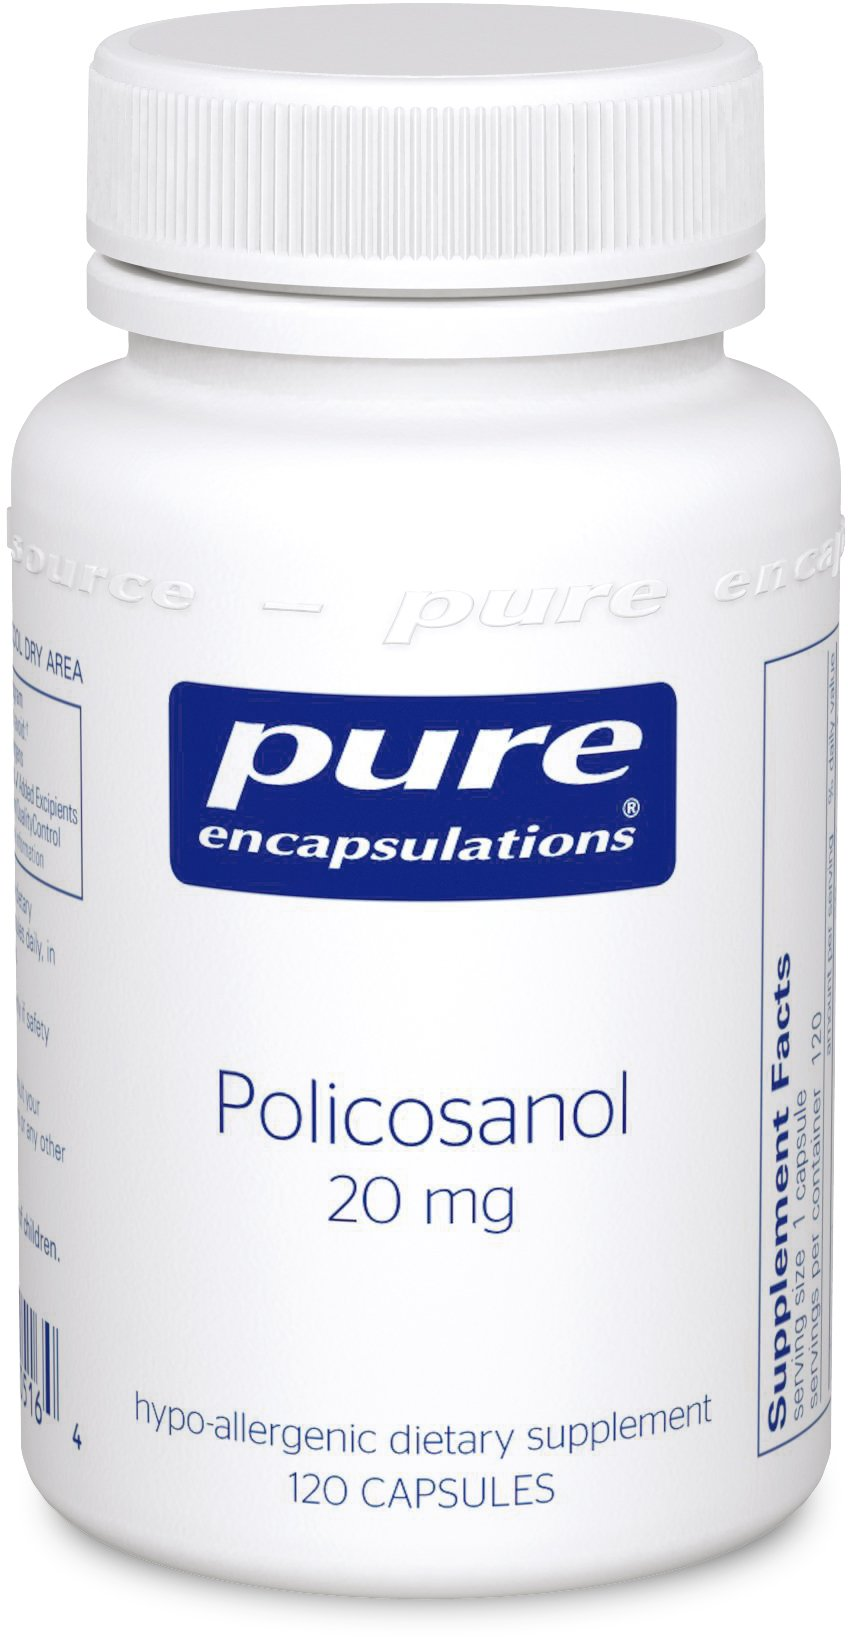 Pure Encapsulations - Policosanol 20 mg - Hypoallergenic Supplement Supports Healthy Lipid Metabolism and Cardiovascular Function* - 120 Capsules